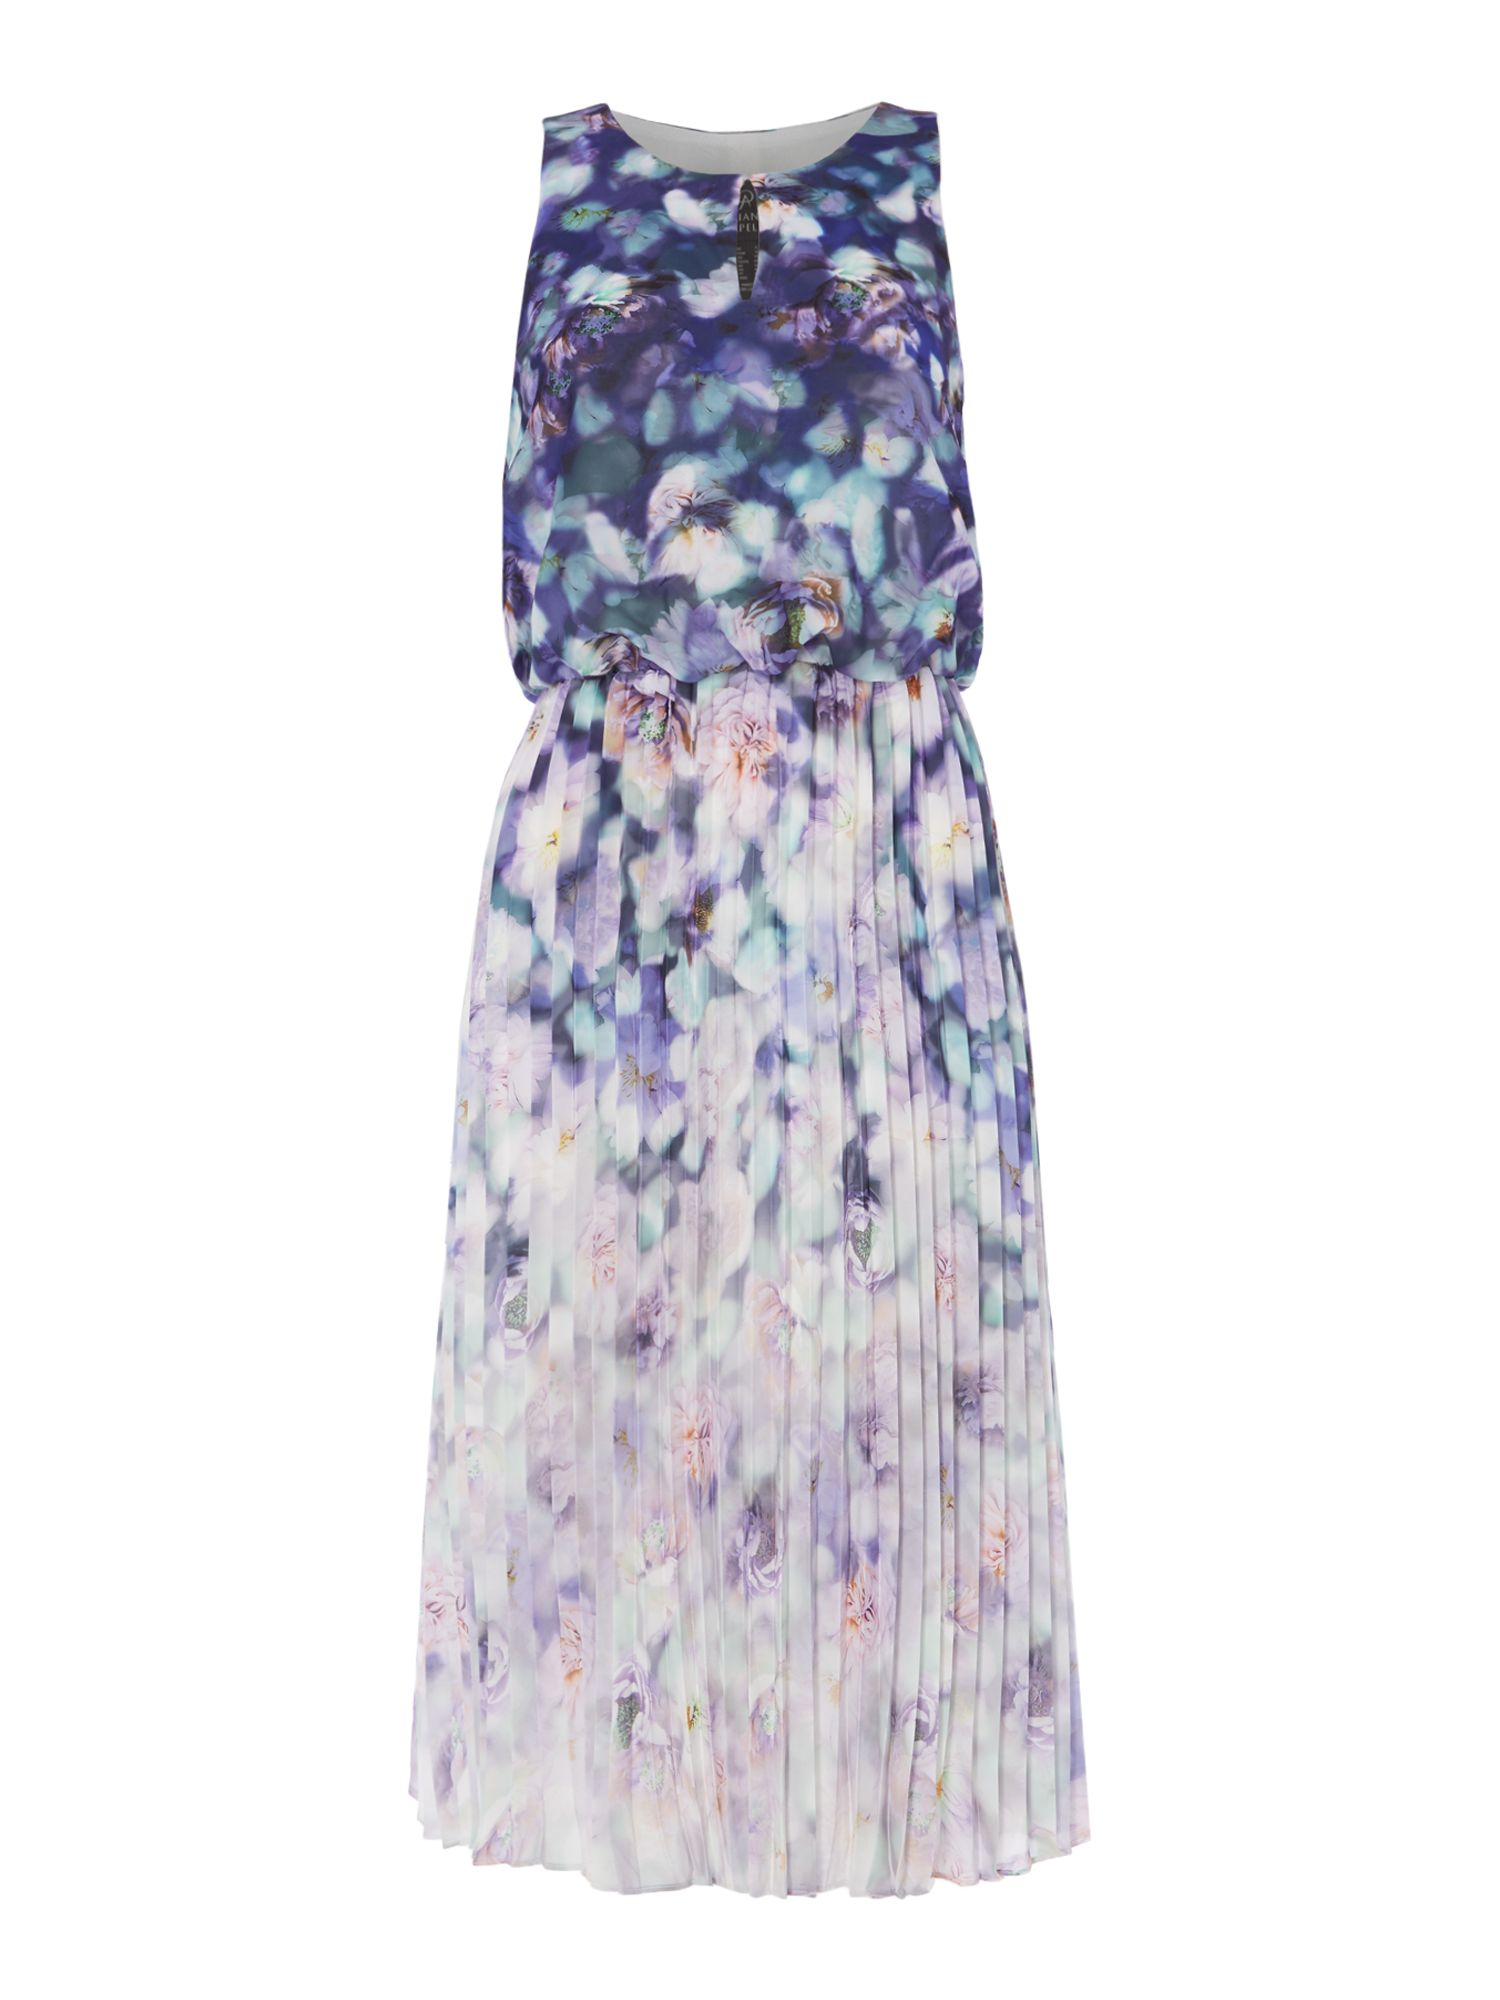 Adrianna Papell Sleeveless v neck printed dress with pleating, Purple